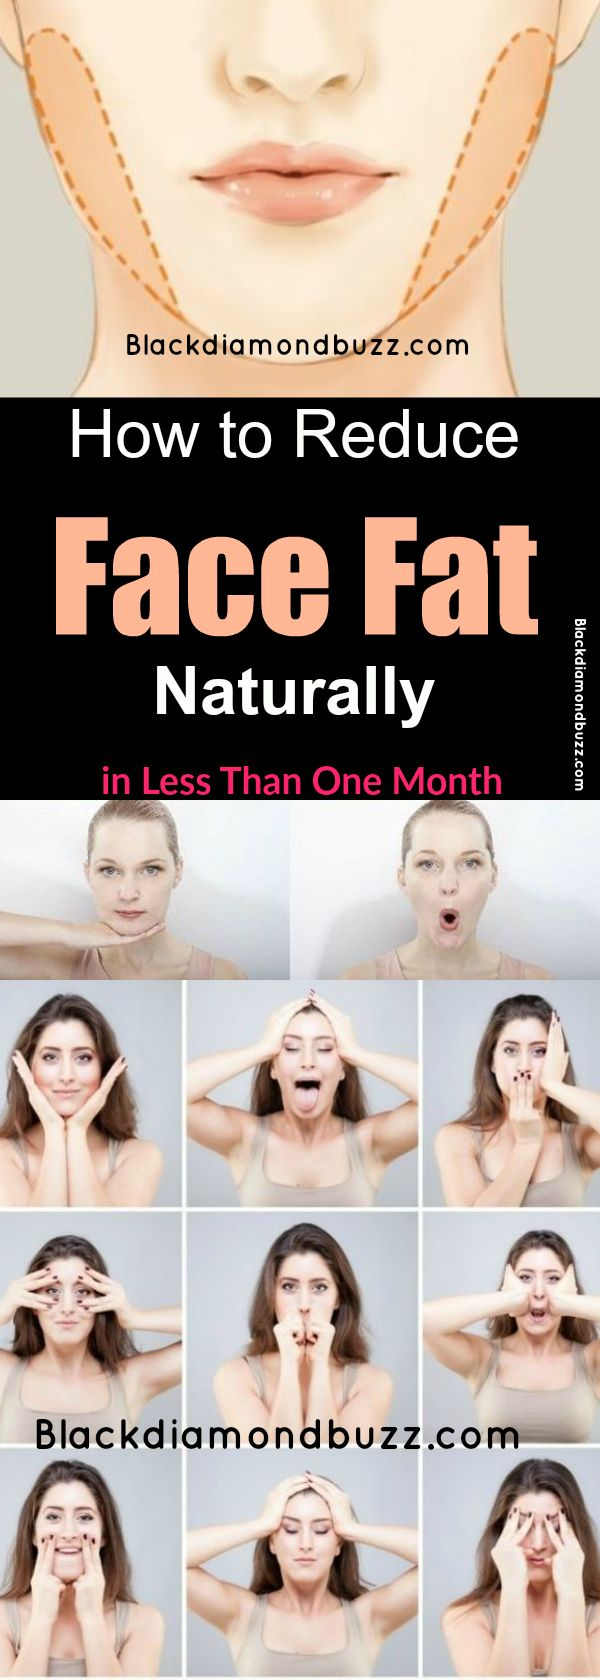 How to Reduce Face Fat Naturally in Less Than One Month